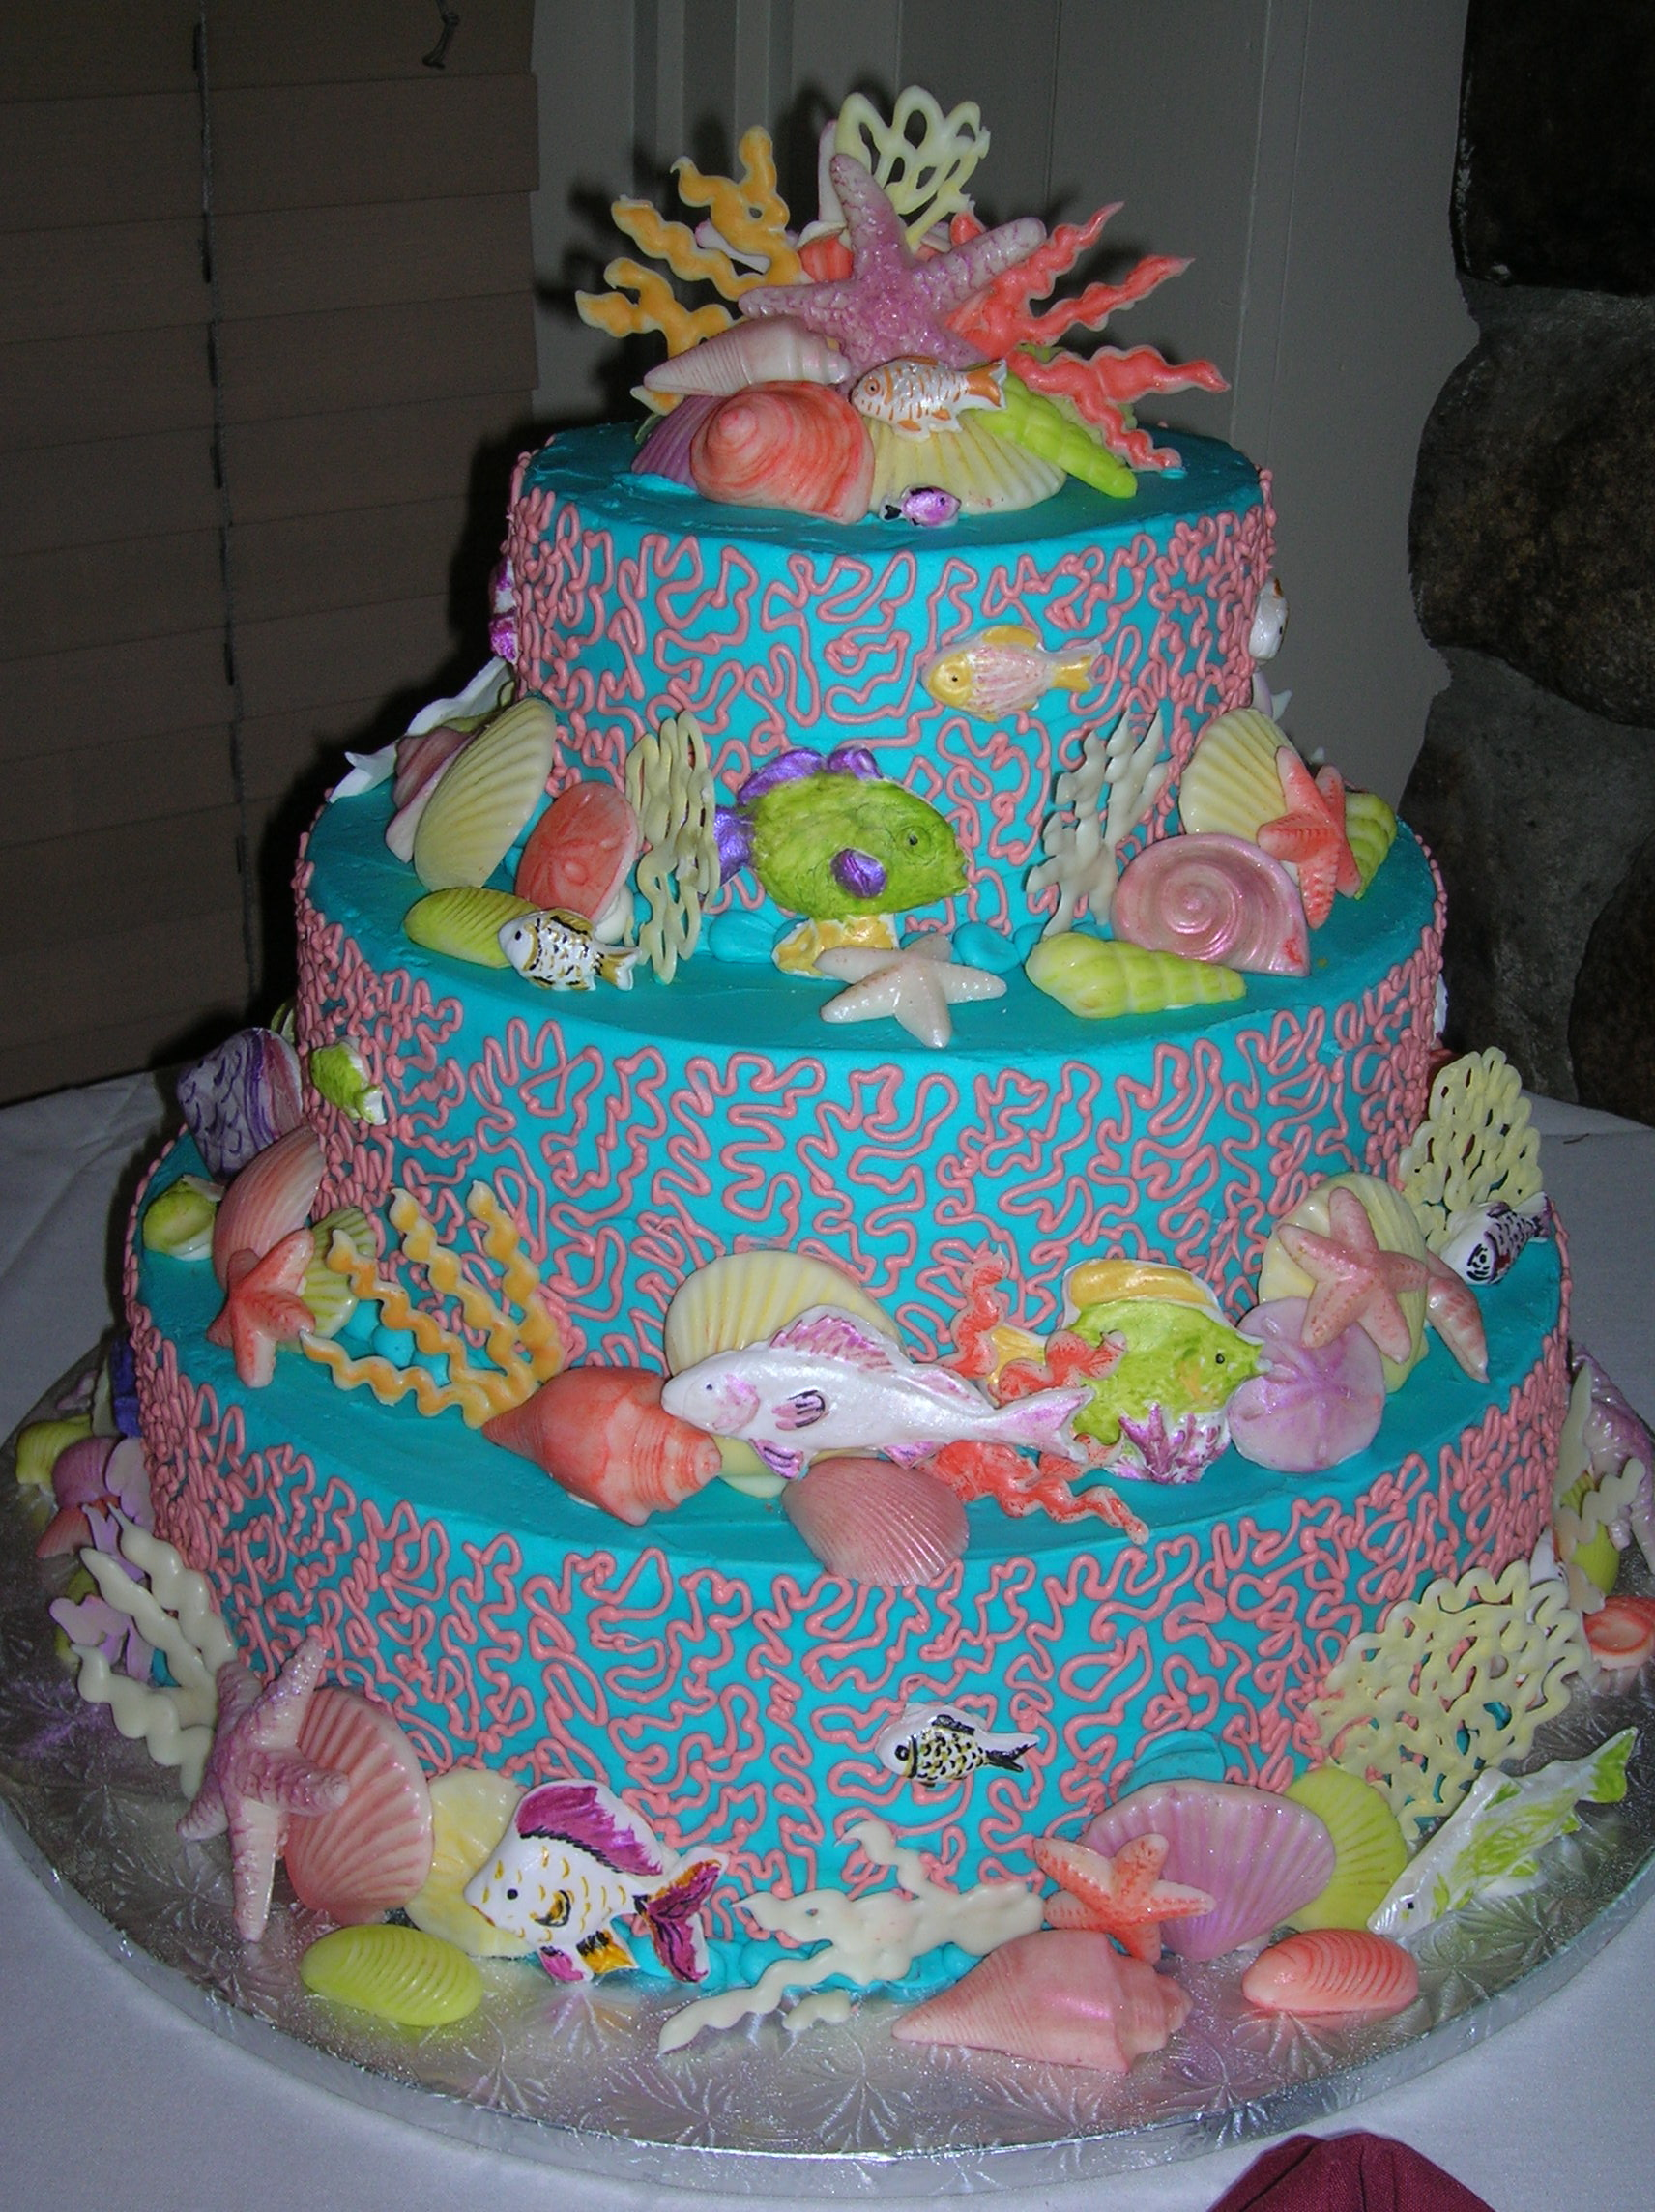 Beach Themed Birthday Cake 698 Pictures to pin on Pinterest